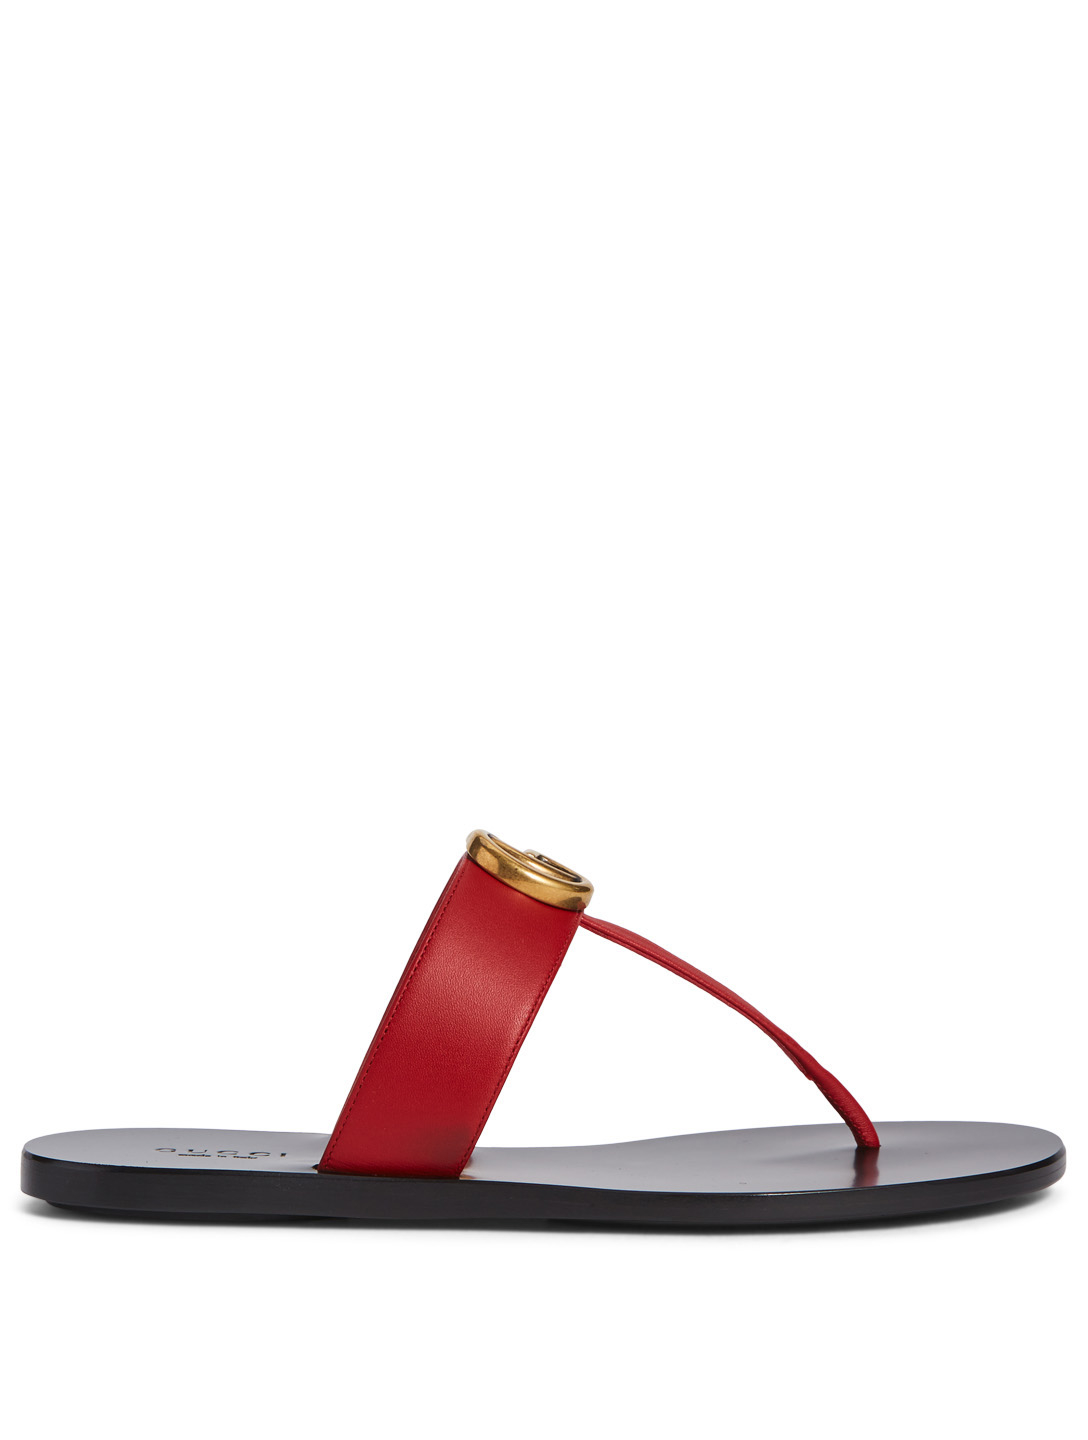 GUCCI Marmont Leather Thong Sandals Womens Red ... bd715374f